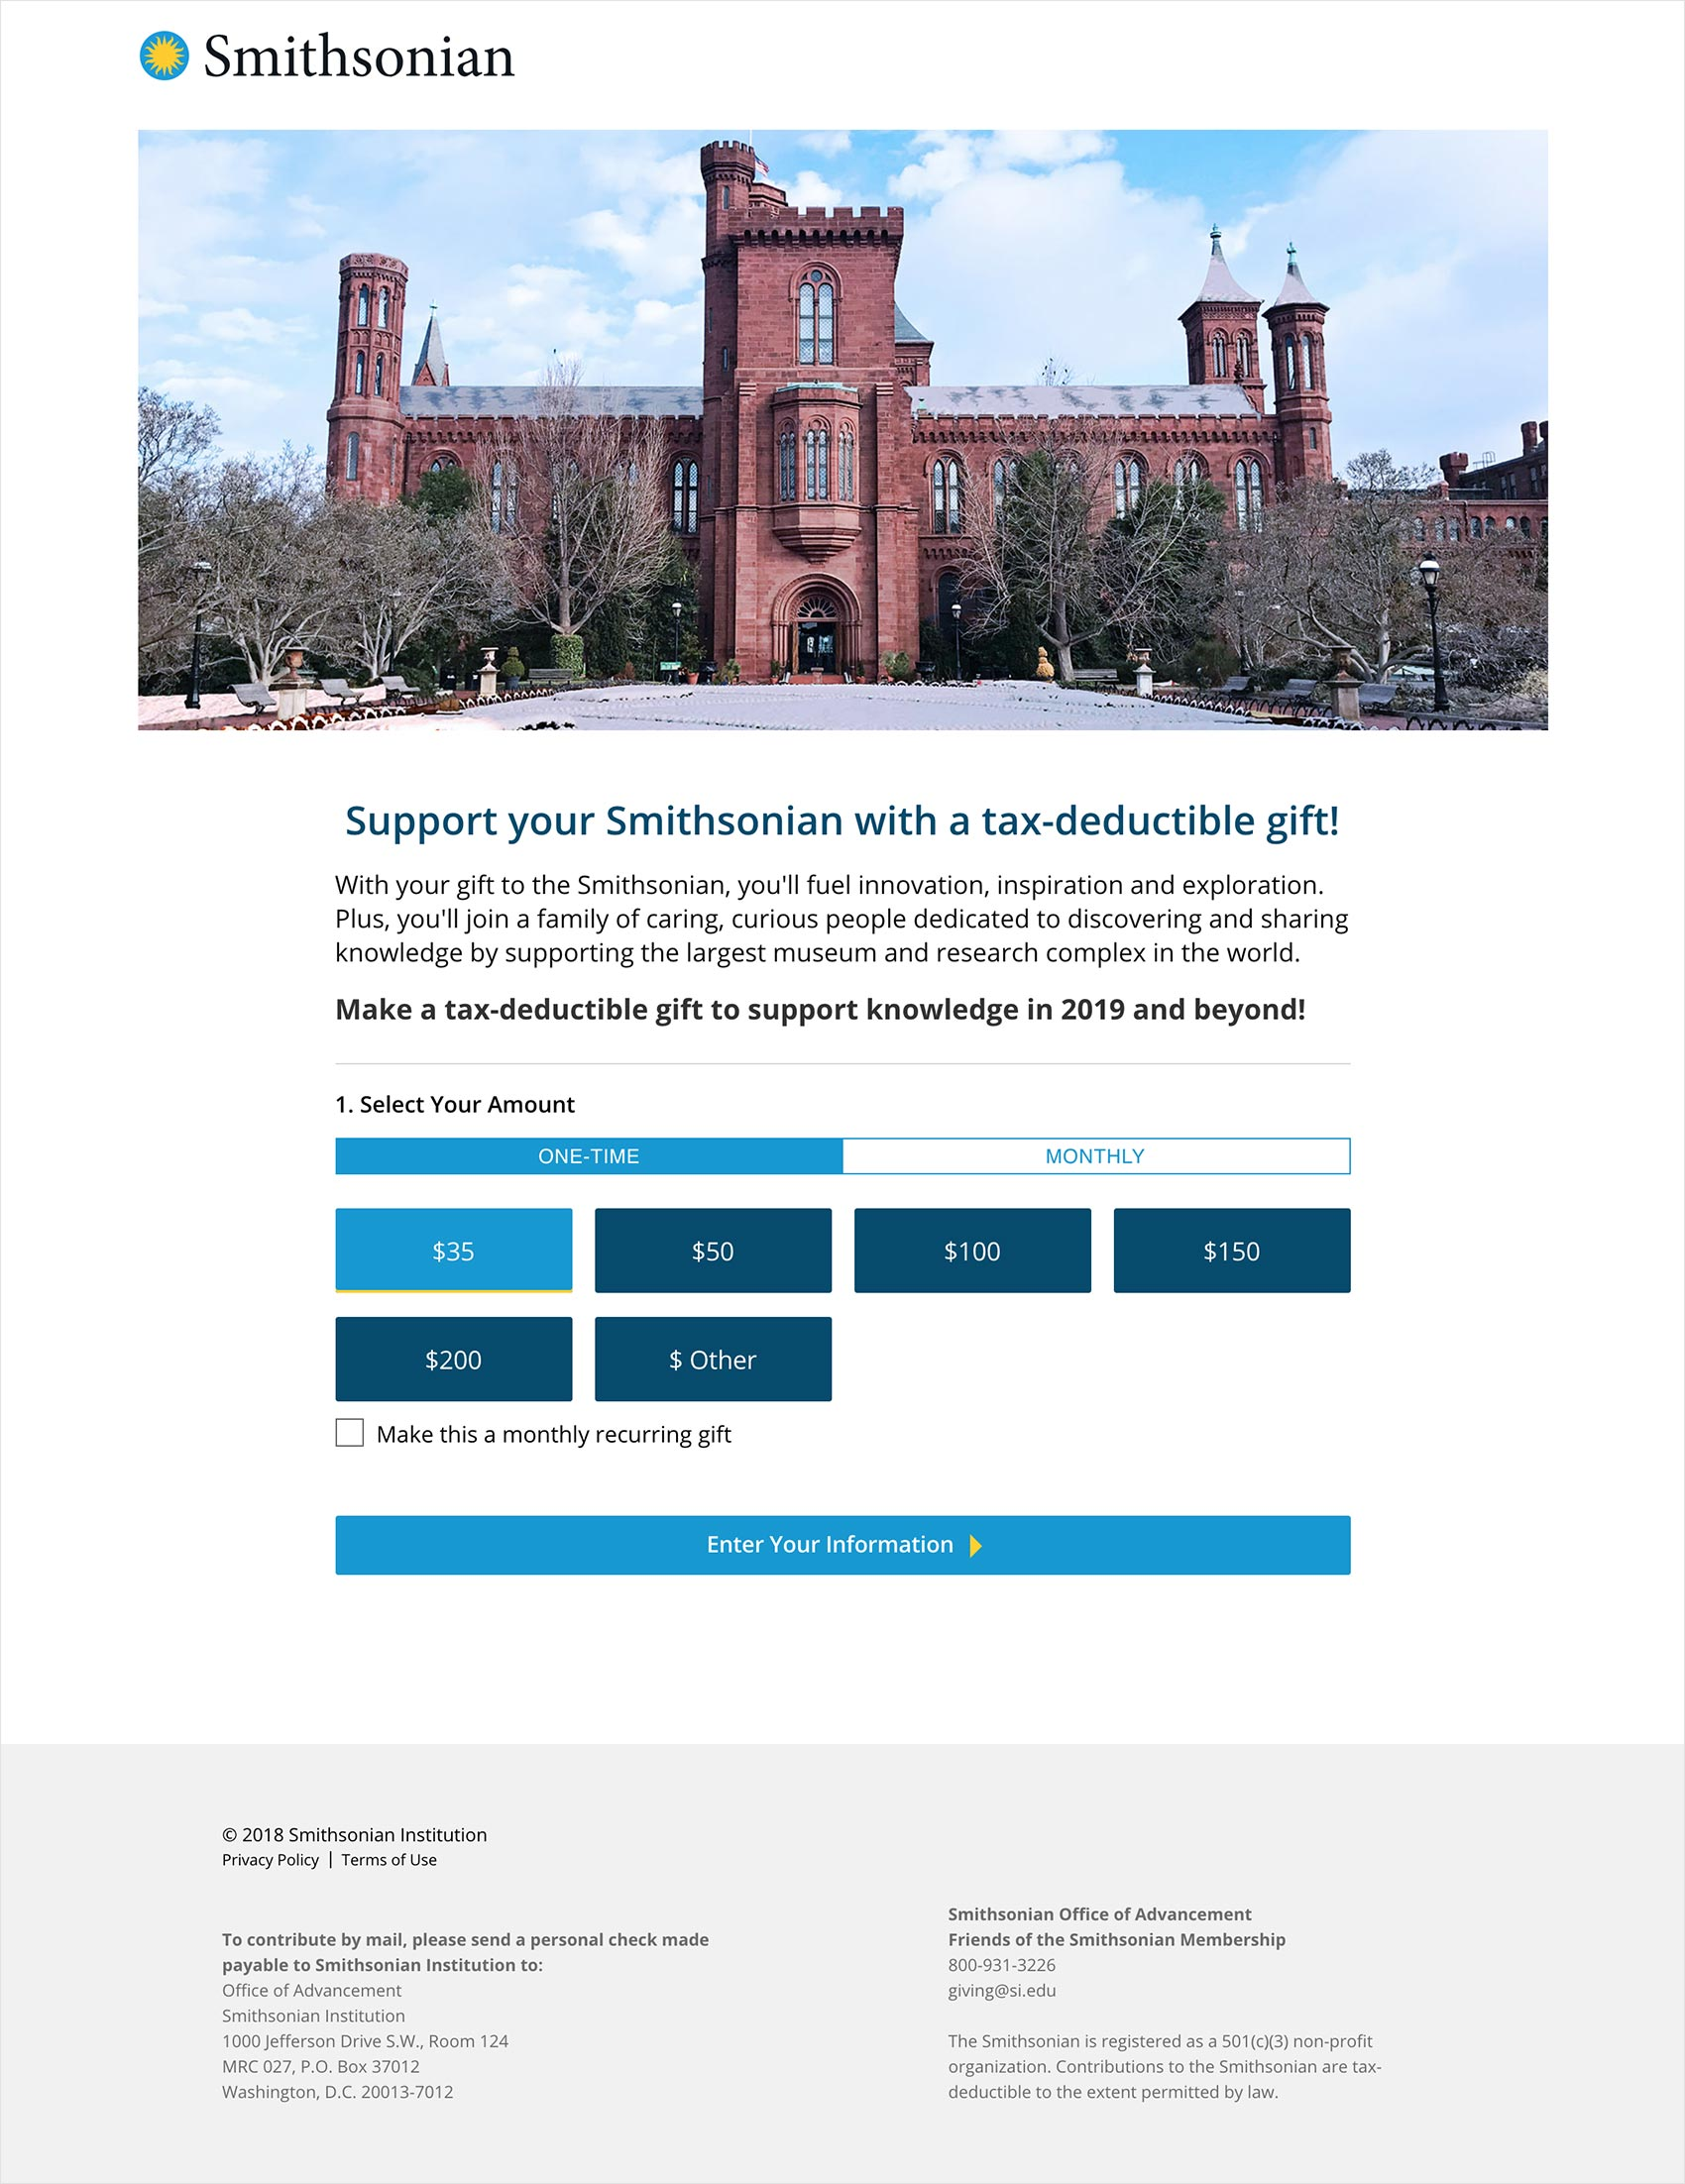 Smithsonian Institute donation form